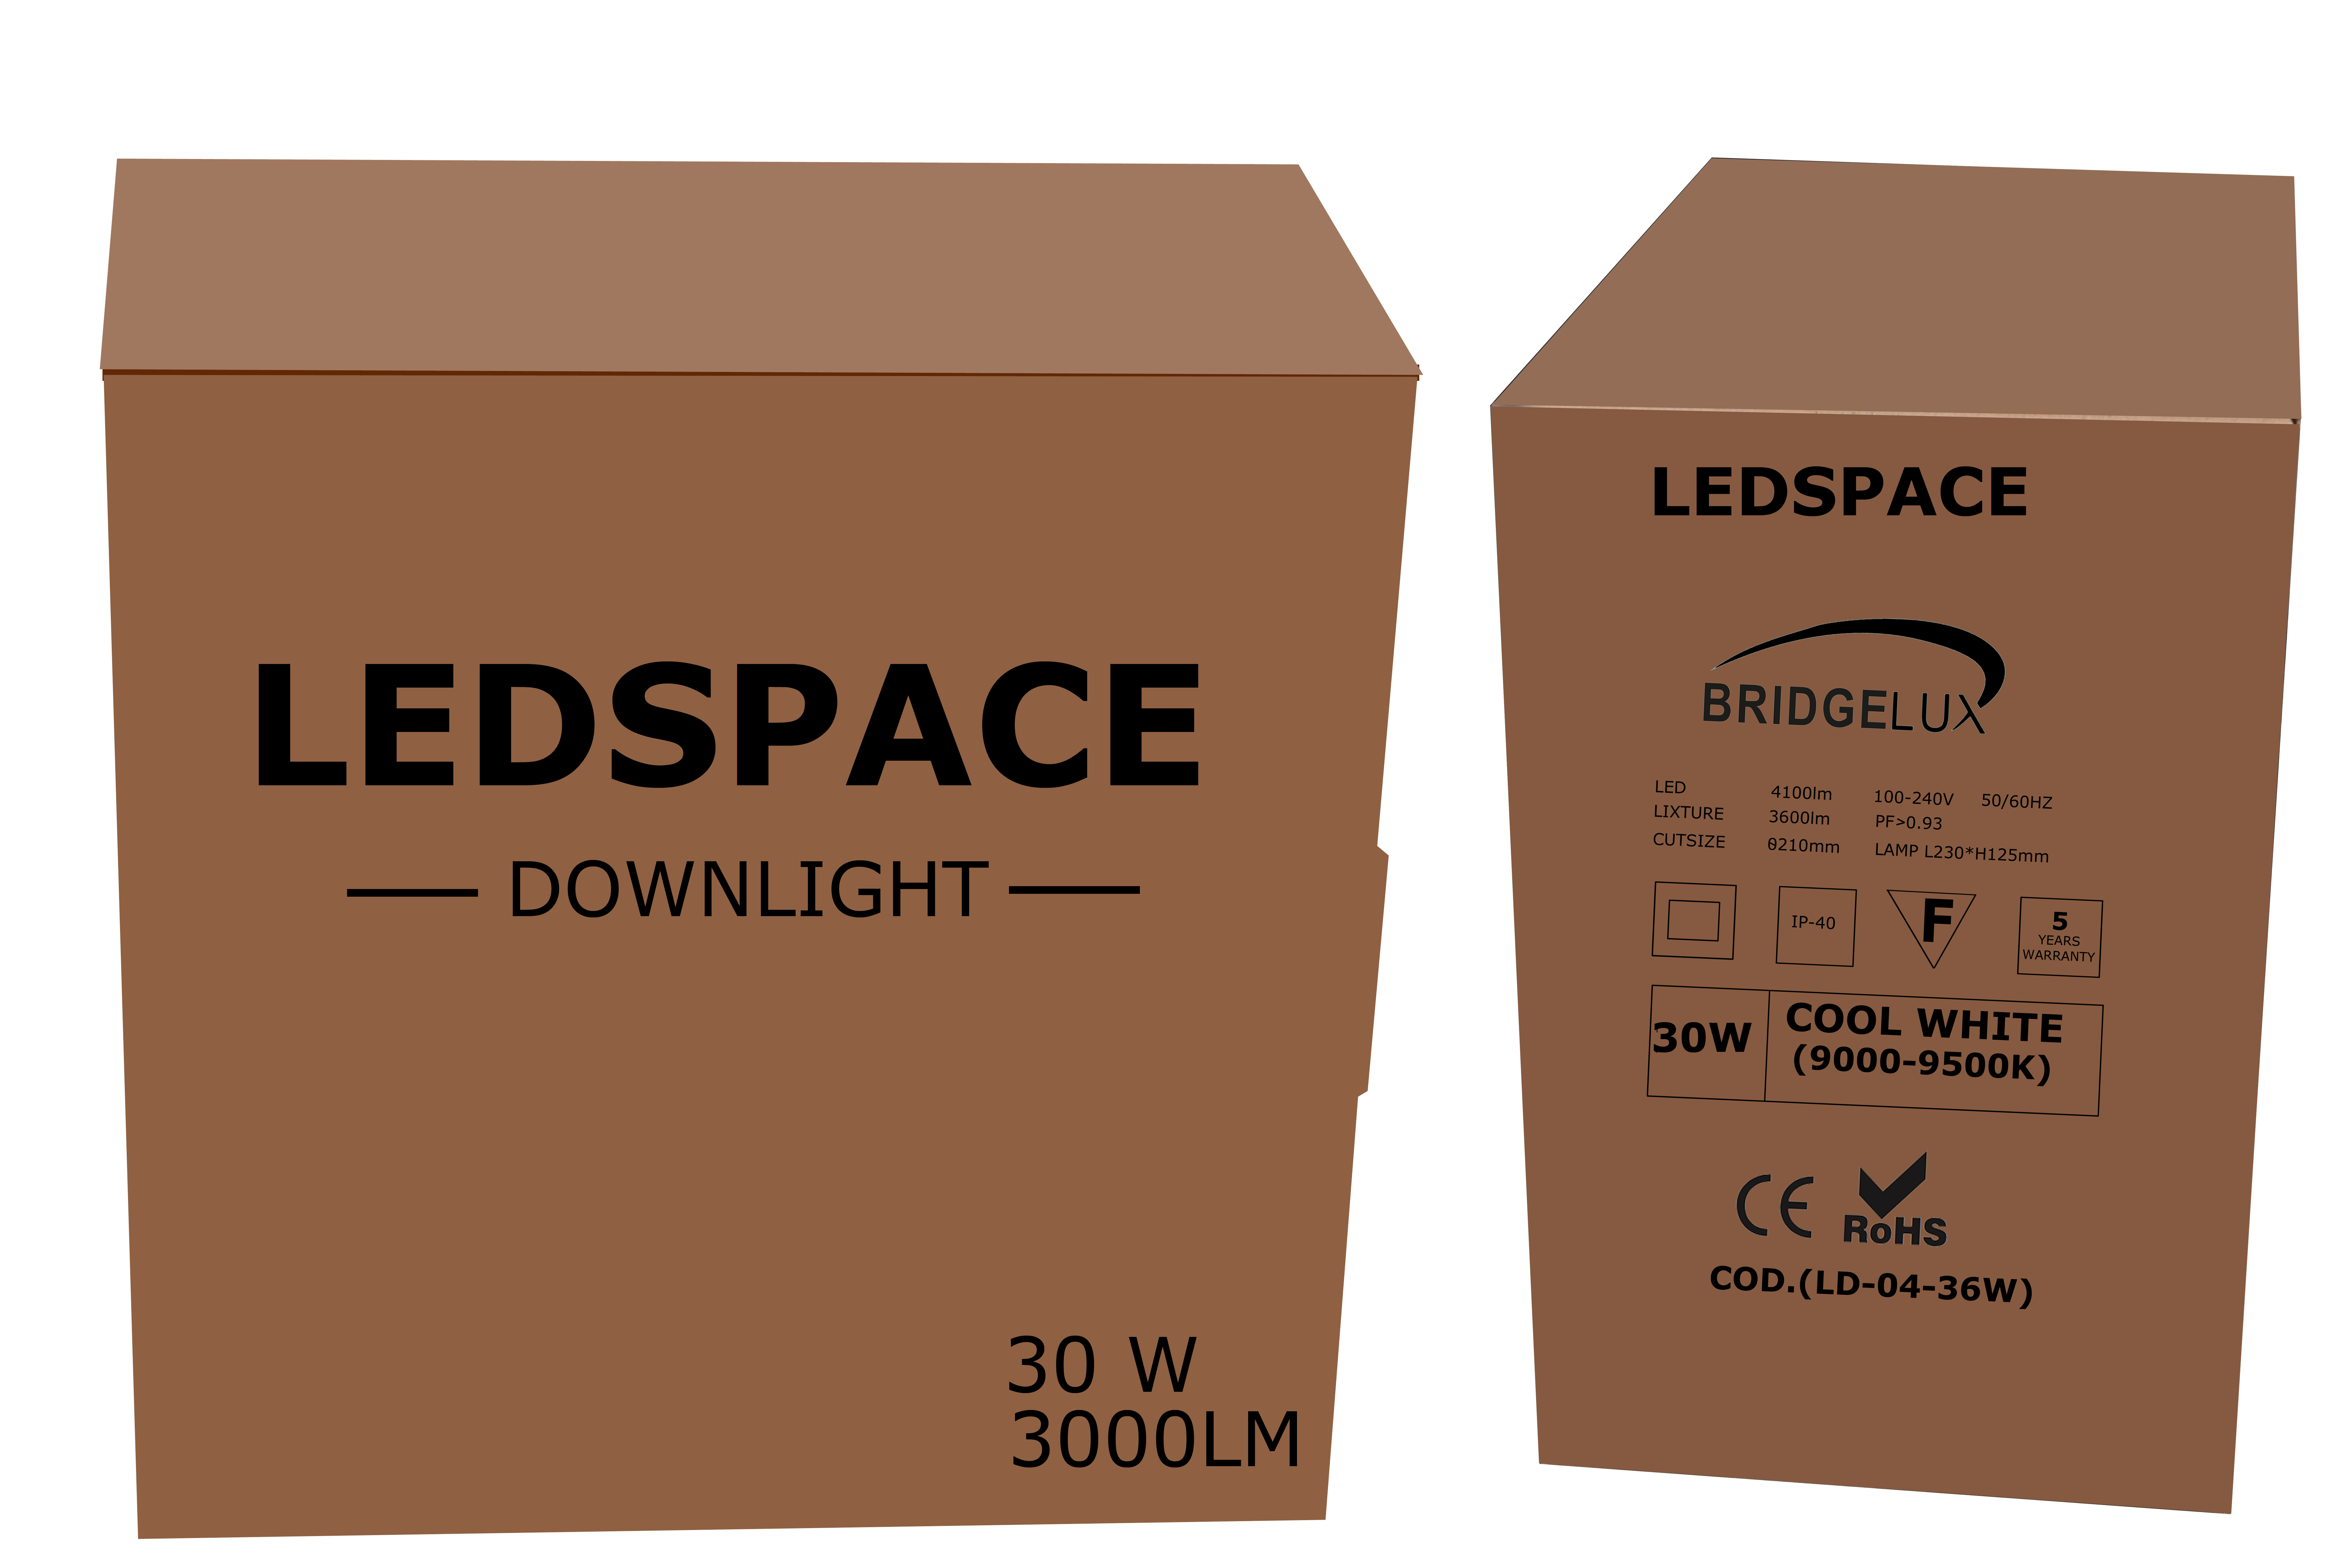 http://ledspace.ae/store-content/15873289221_2.jpg